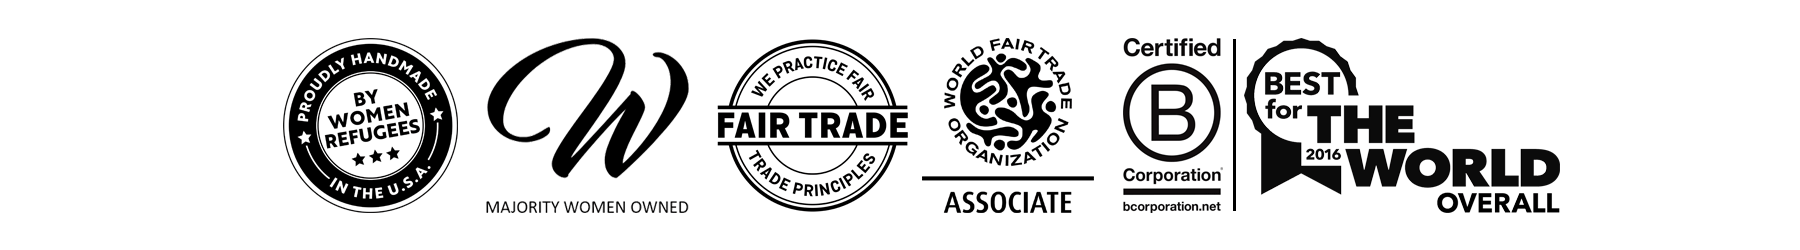 Fair Trade WFTO, women owned, best for the world and B-Corp certification for Propserity Candle with soy blend candles handmade by women artisan refugees